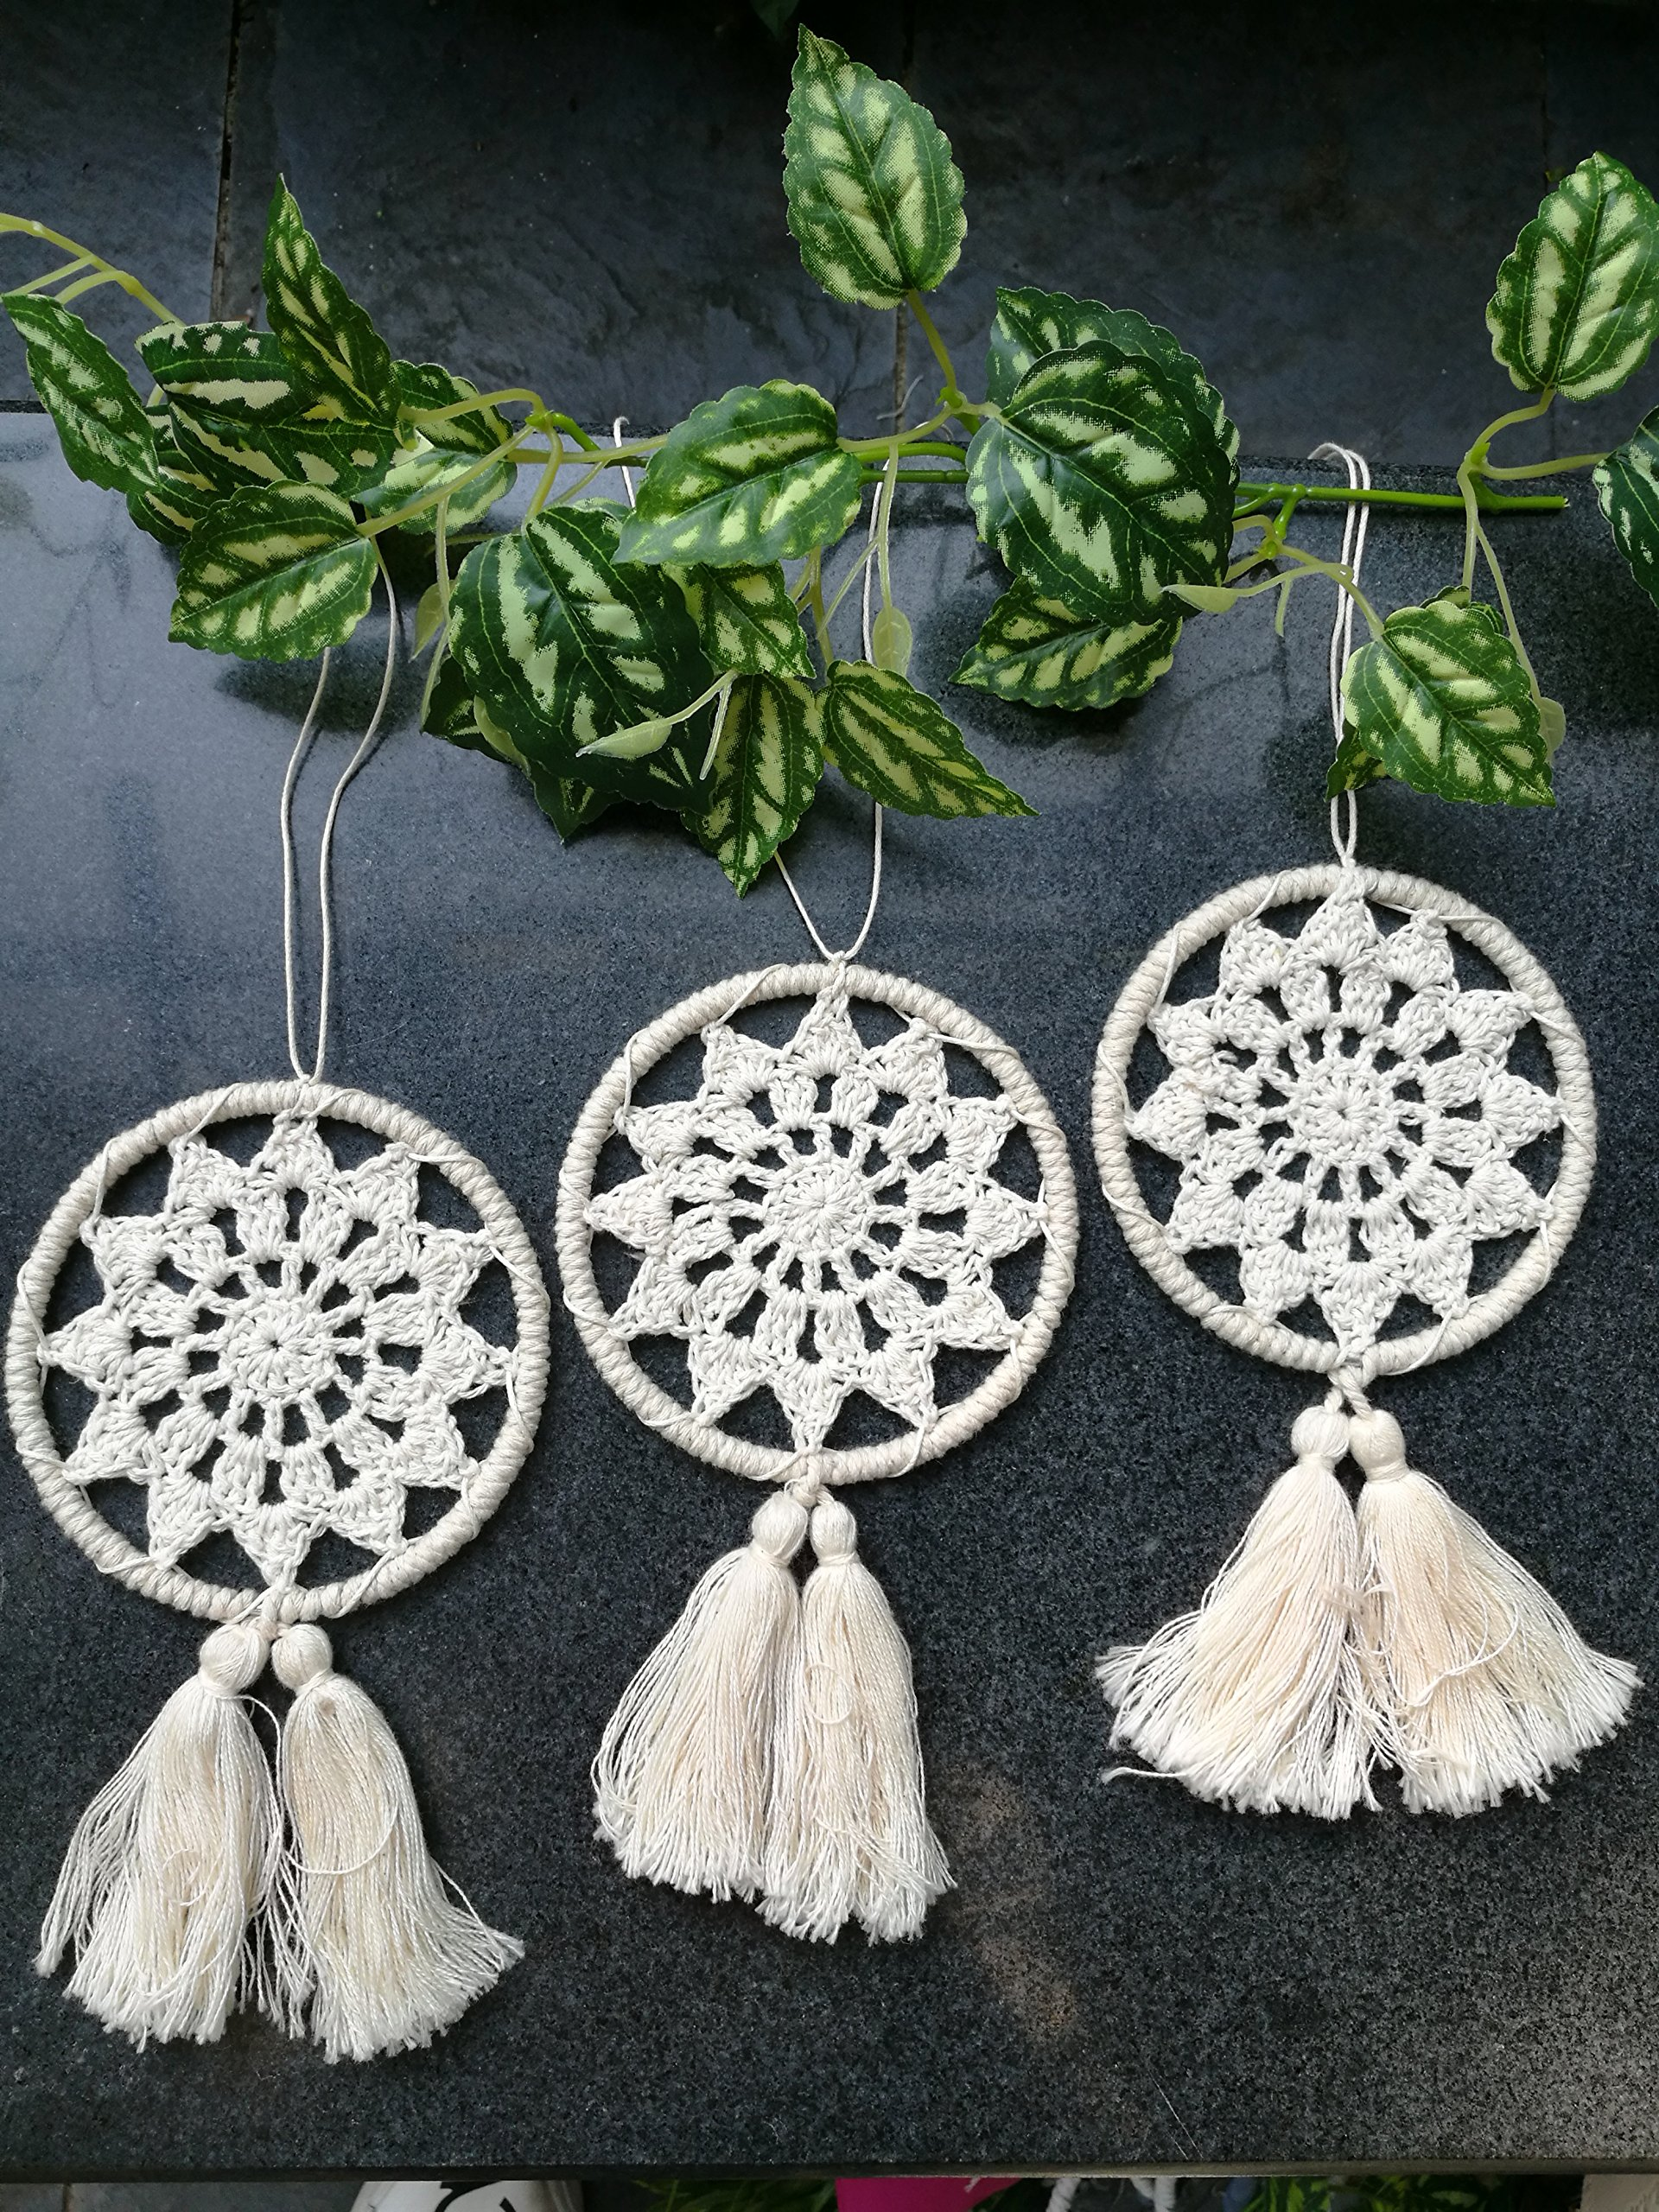 Bella's garden Mini Dream Catchers Boho Wedding Party Favor Baby Shower, Birthday Gift Bedroom Wall Ornaments Car Hanging Decoration Tassels Set of 3 (S1)